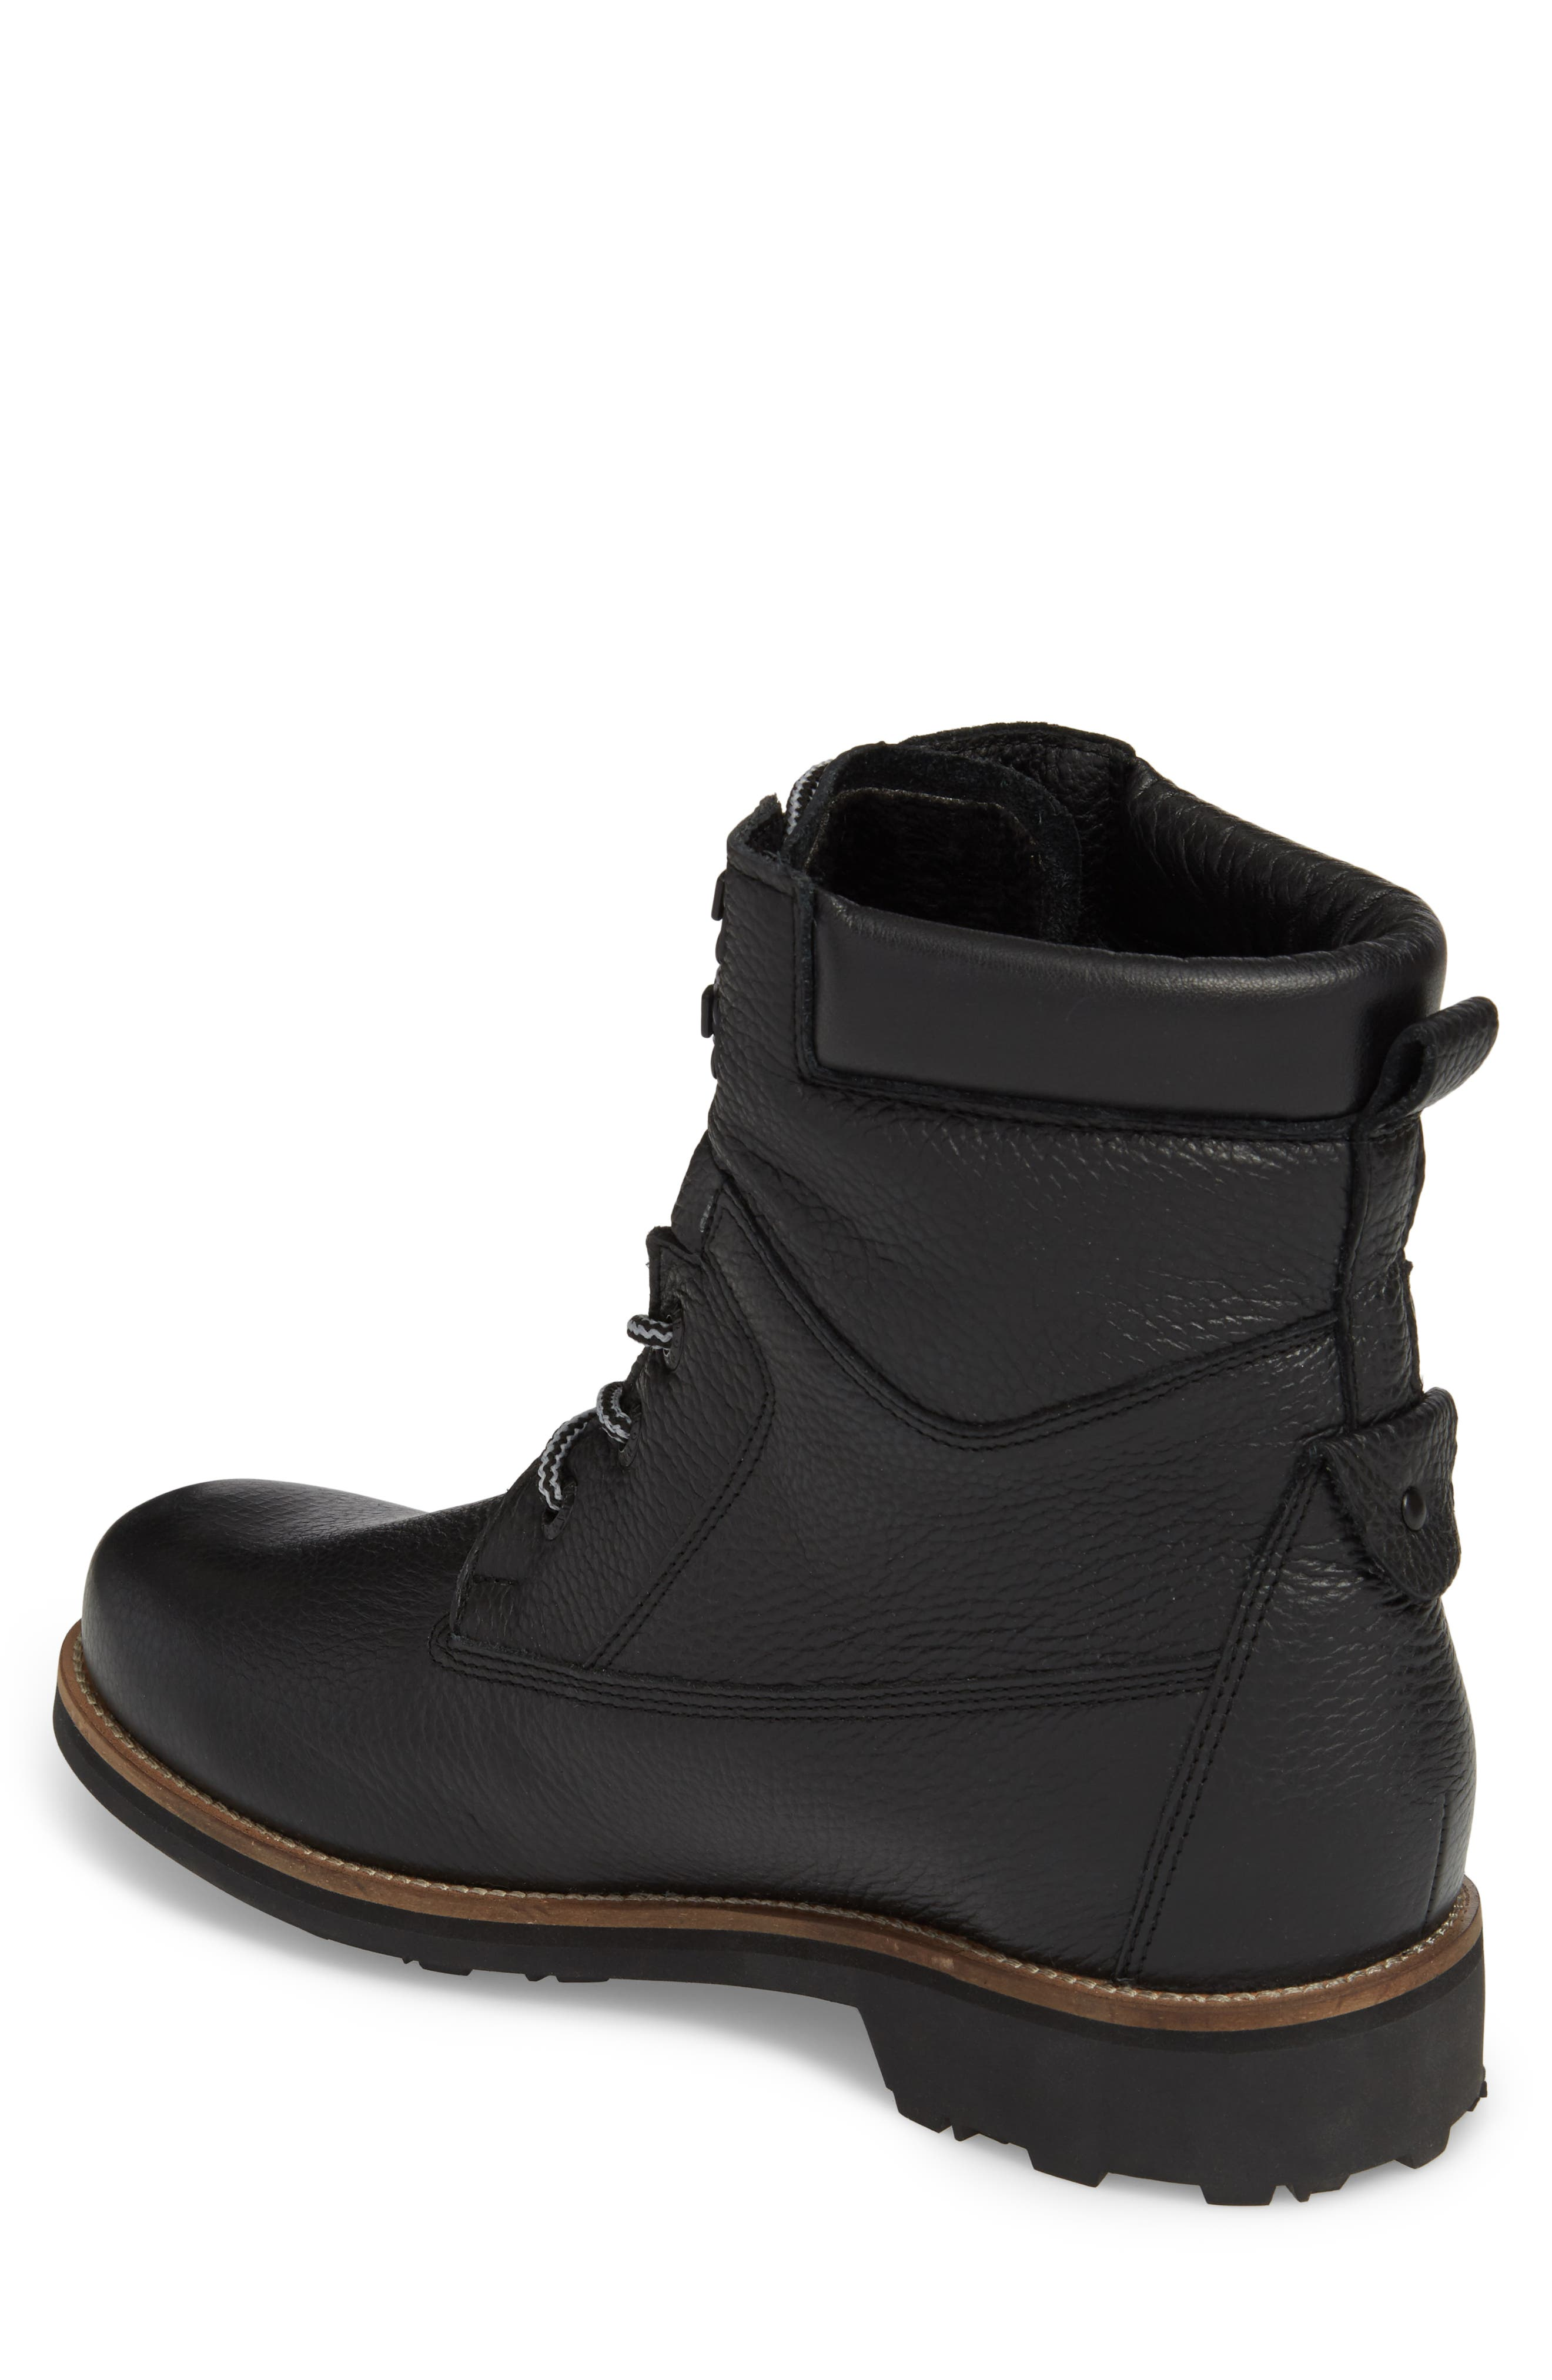 PAJAR,                             David Plain Toe Waterproof Boot,                             Alternate thumbnail 2, color,                             BLACK LEATHER